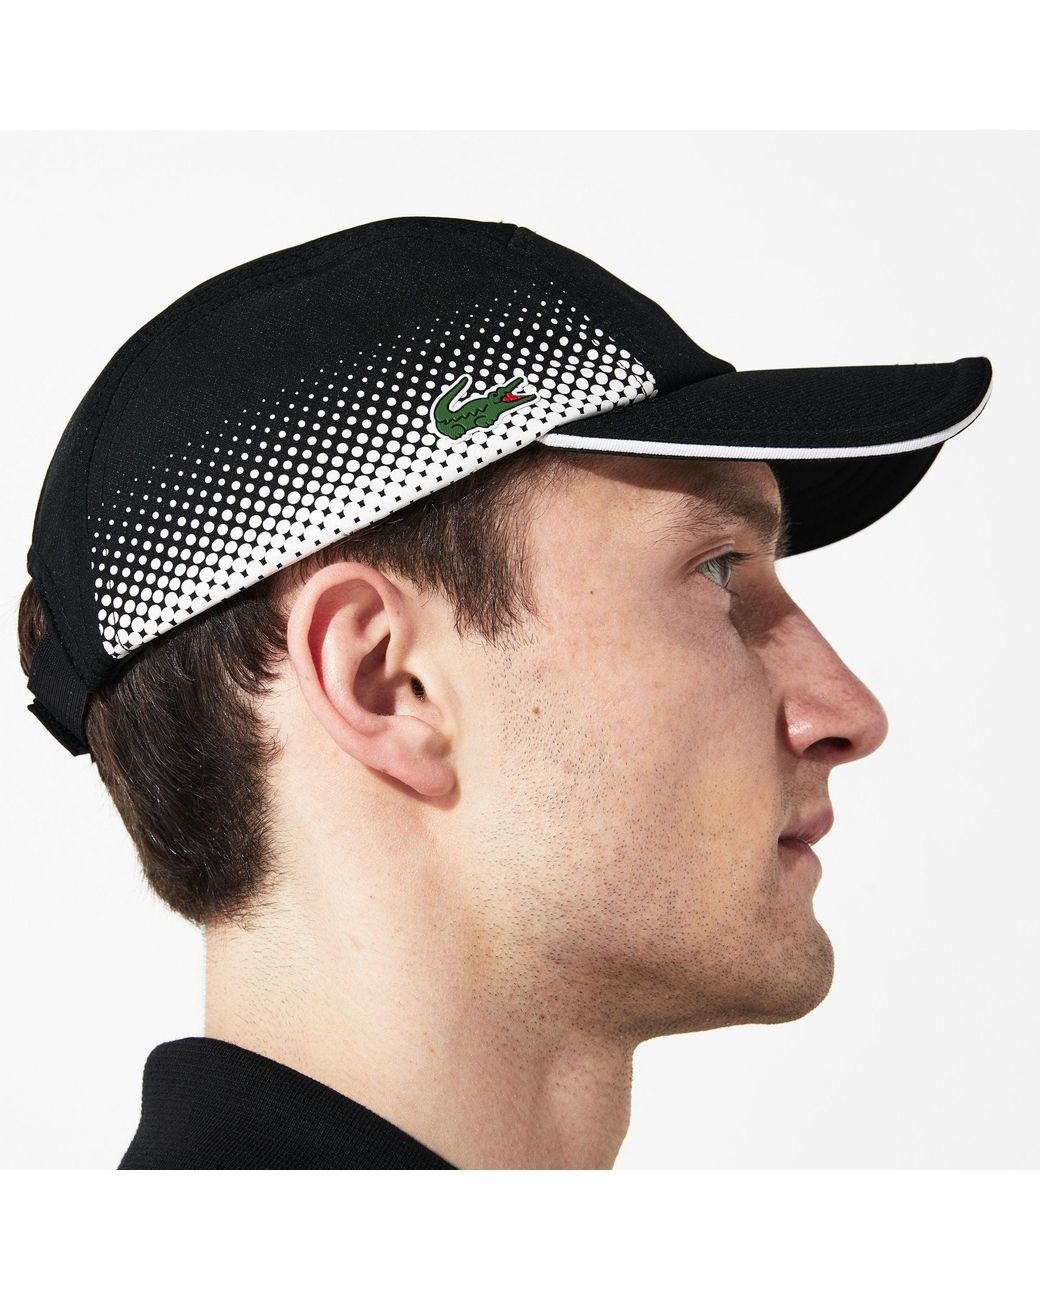 aa025872bc5 Lyst - Lacoste Sport Breathable Tennis Cap in Black for Men